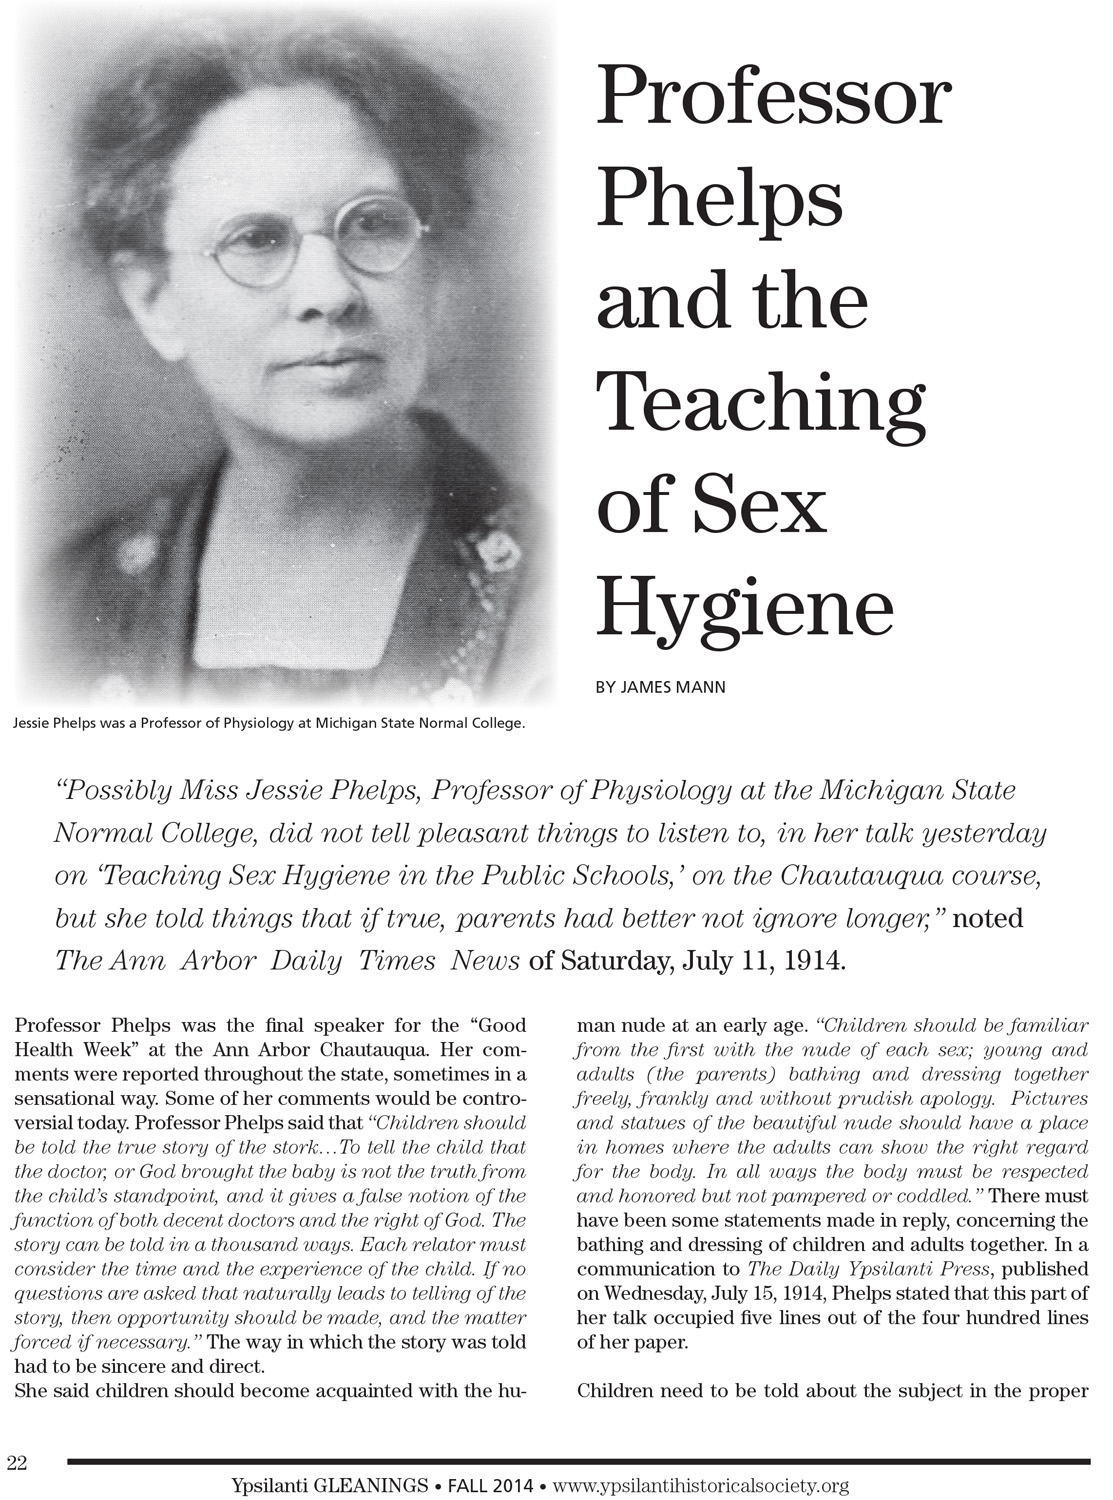 Professor Phelps and the Teaching of Sex Hygiene image